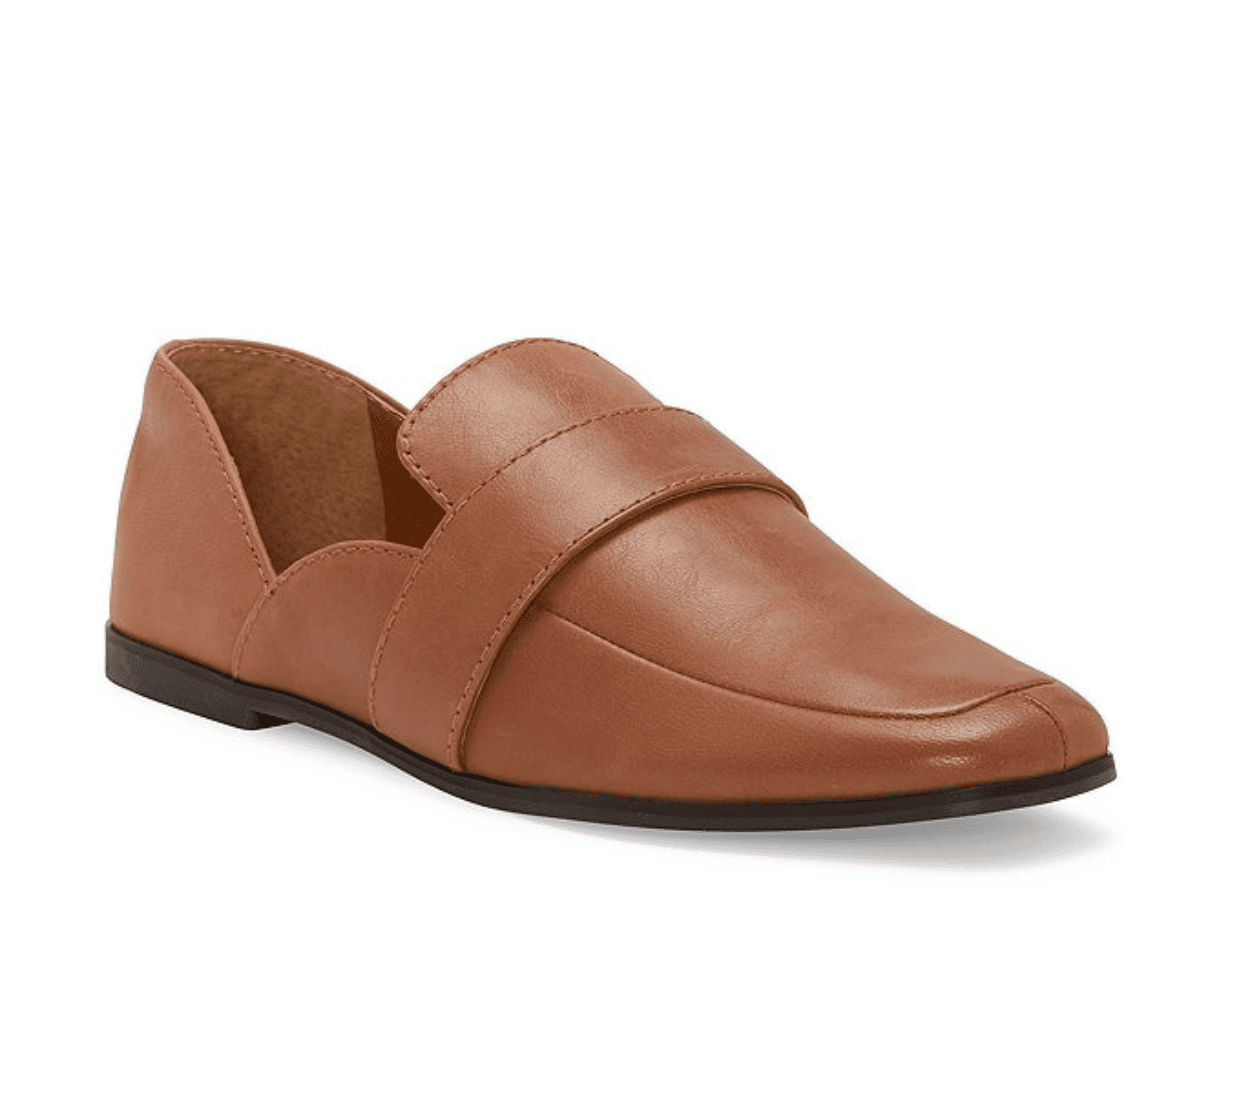 Lucky Brand Adelha Leather Flat Loafers